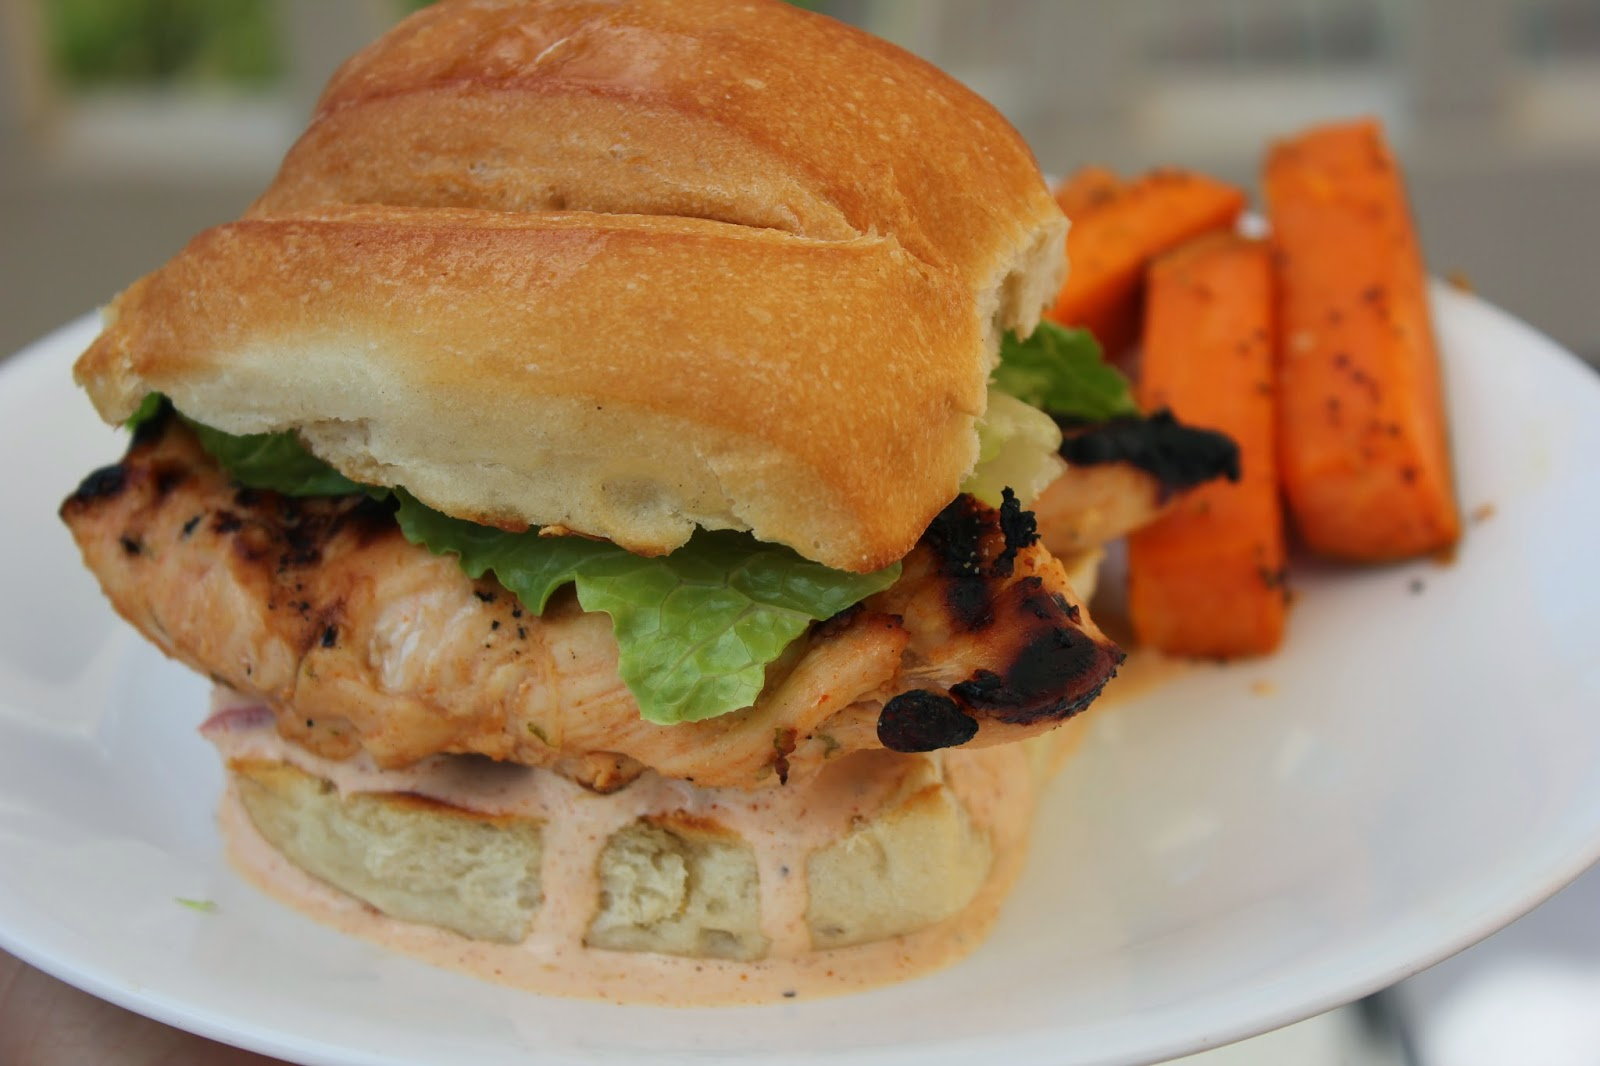 Recipe:  Chicken, Recipe:  Sandwiches, Recipe:  Main Dish, Easy Meal Ideas, Jeff Mauro, The Sandwich King, Louisiana Hot Sauce Chicken Sandwich with Cajun Ranch Dressing, Deals to Meals